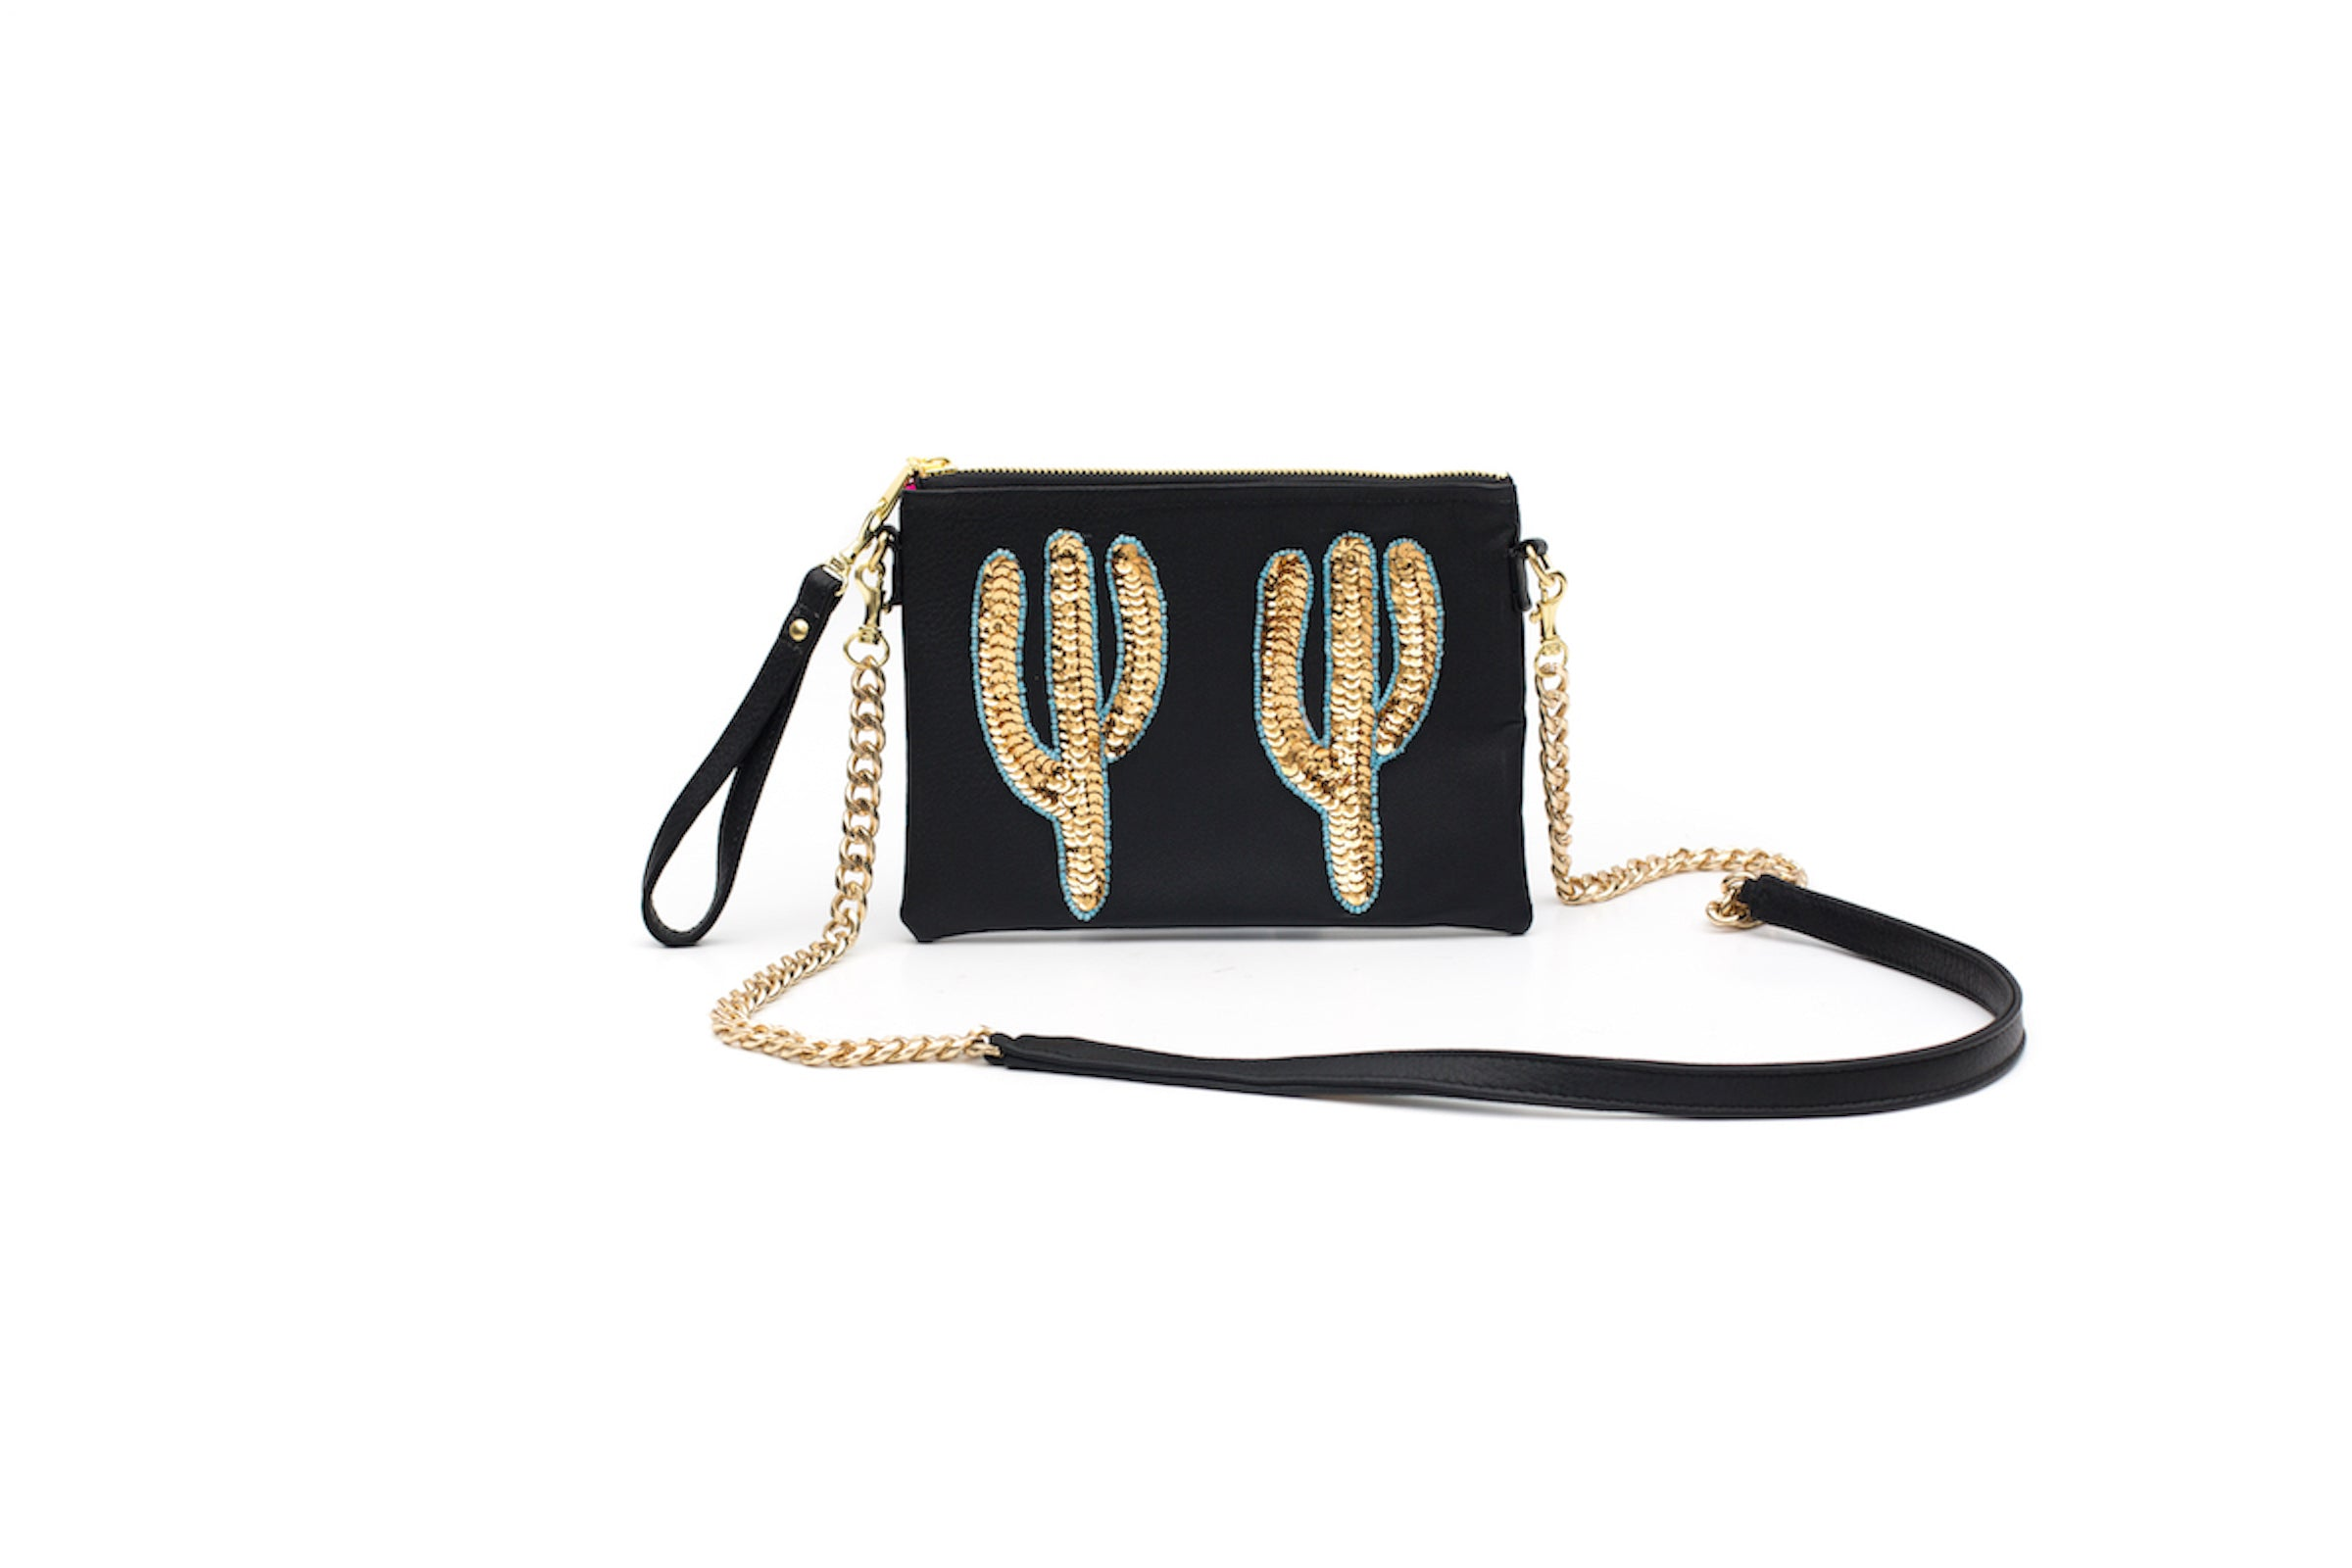 Small Black Cactus Crossbody Bag